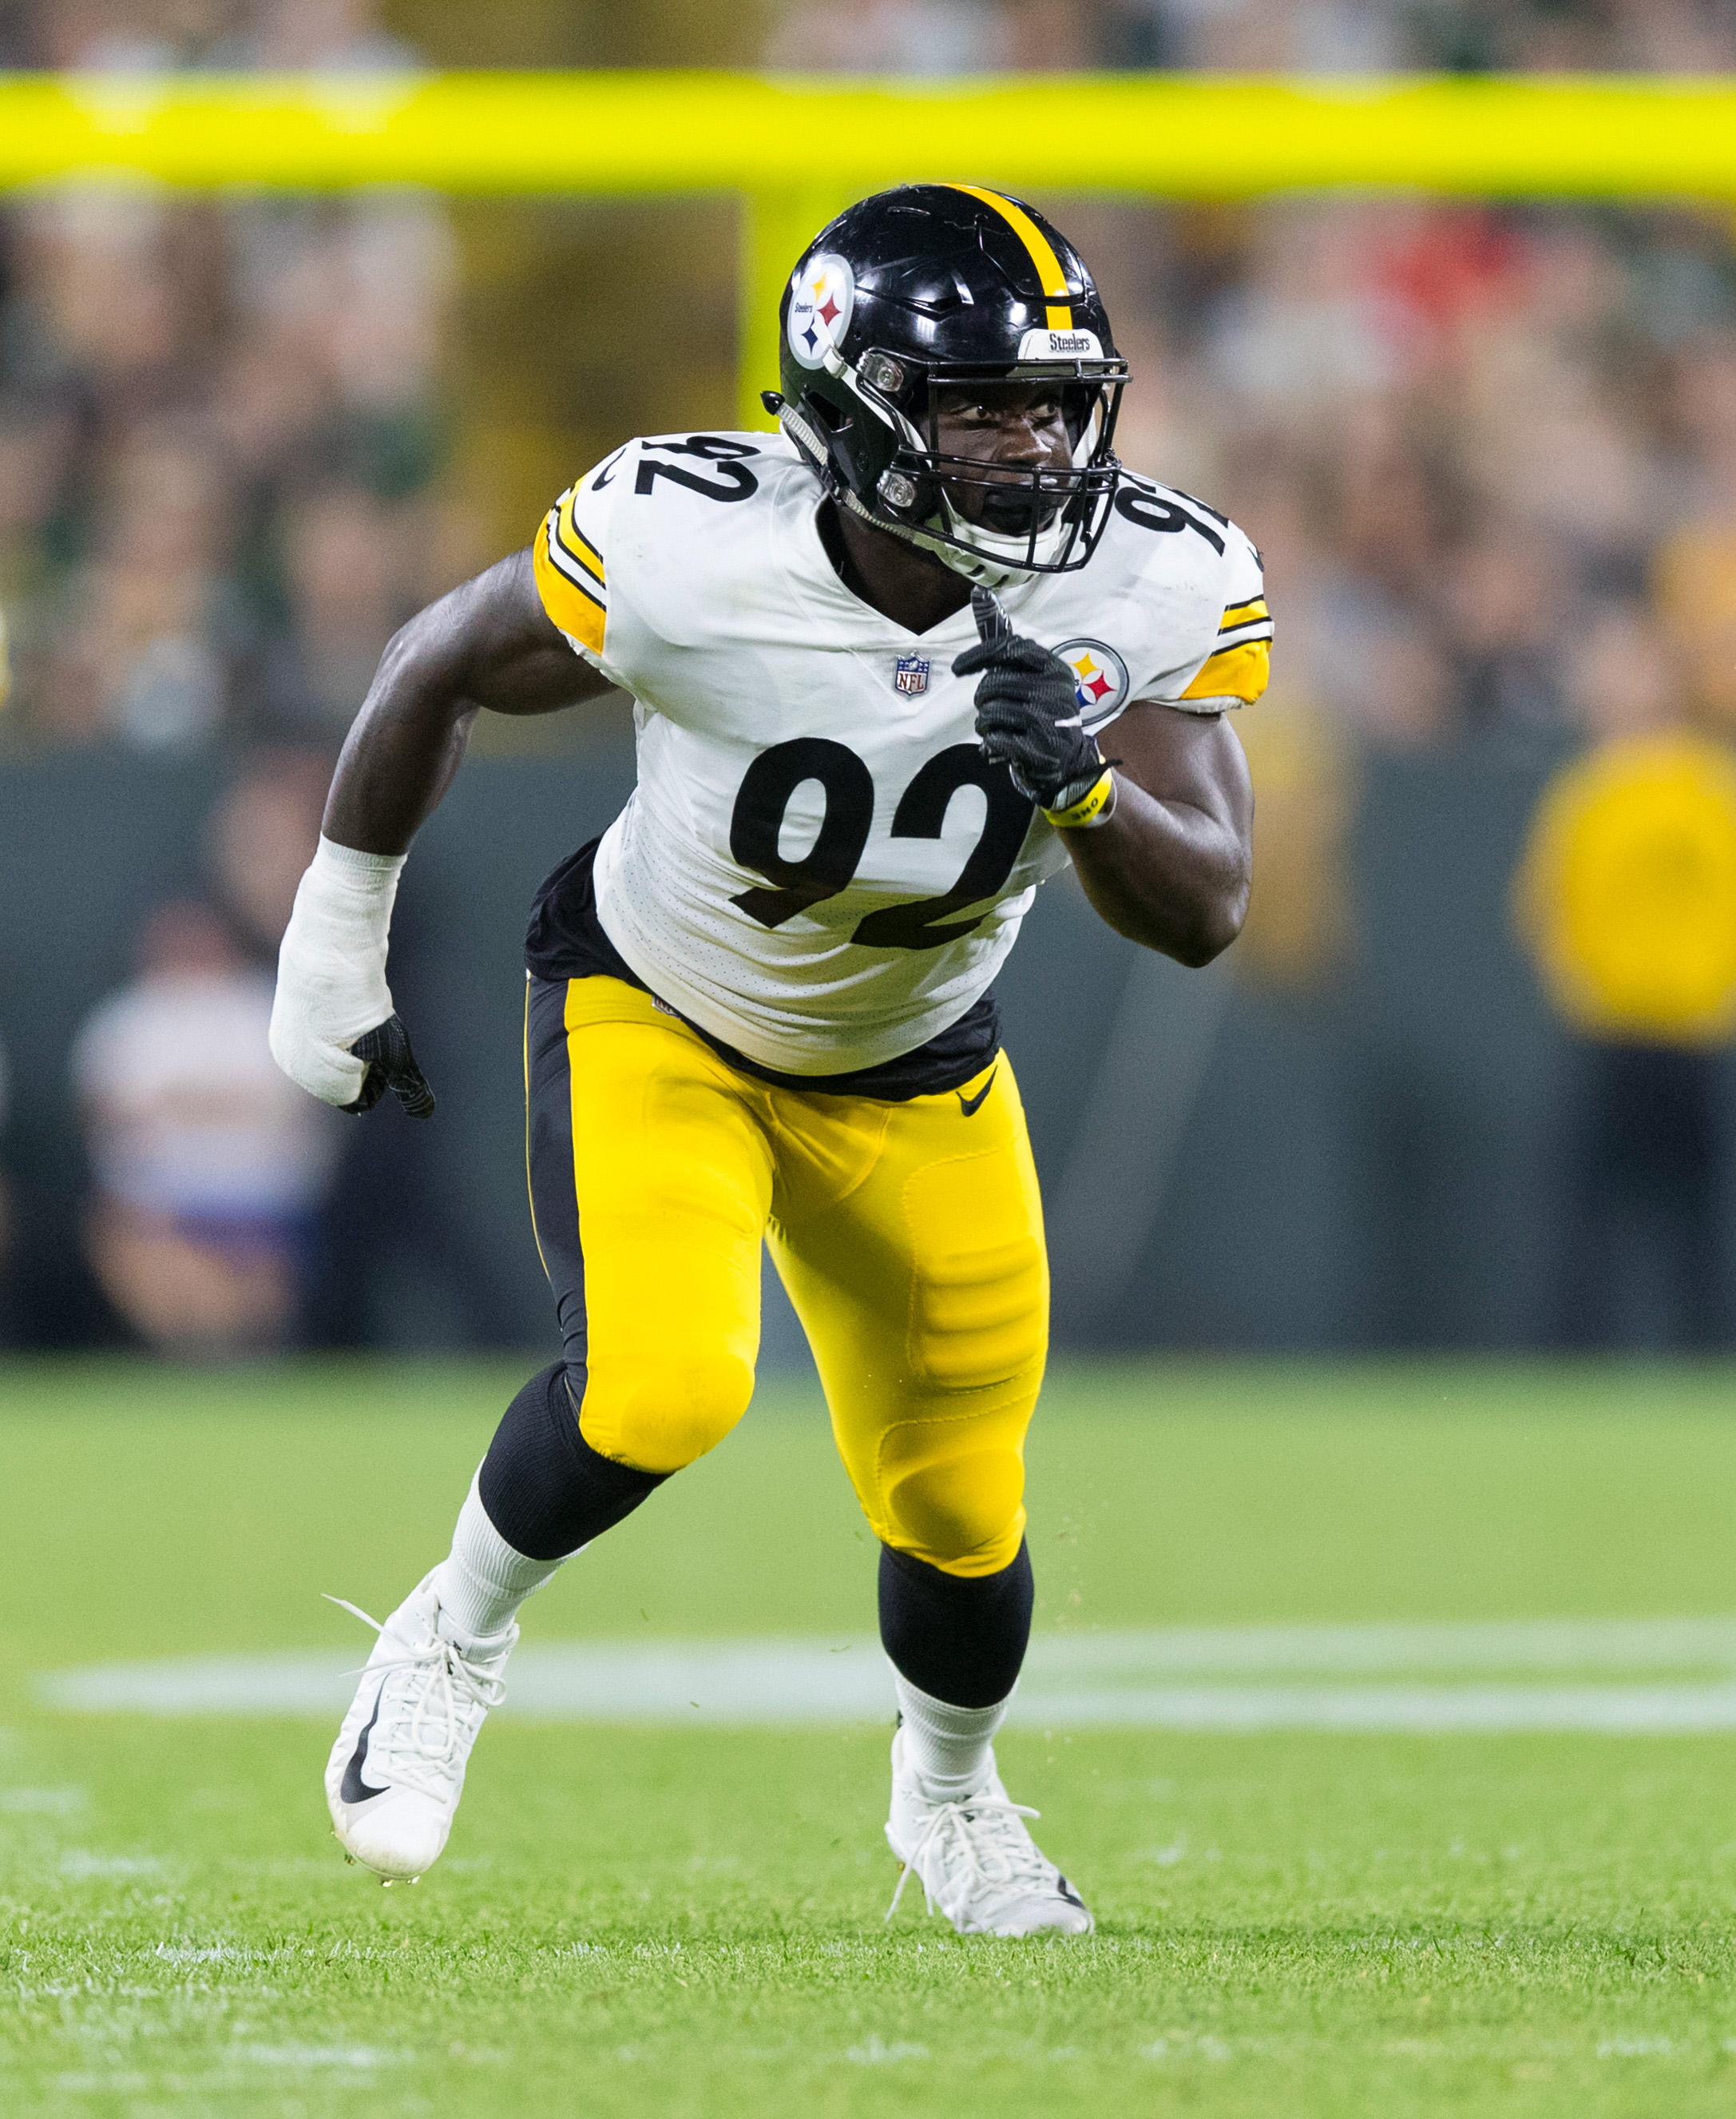 NFL: Pittsburgh Steelers at Green Bay Packers